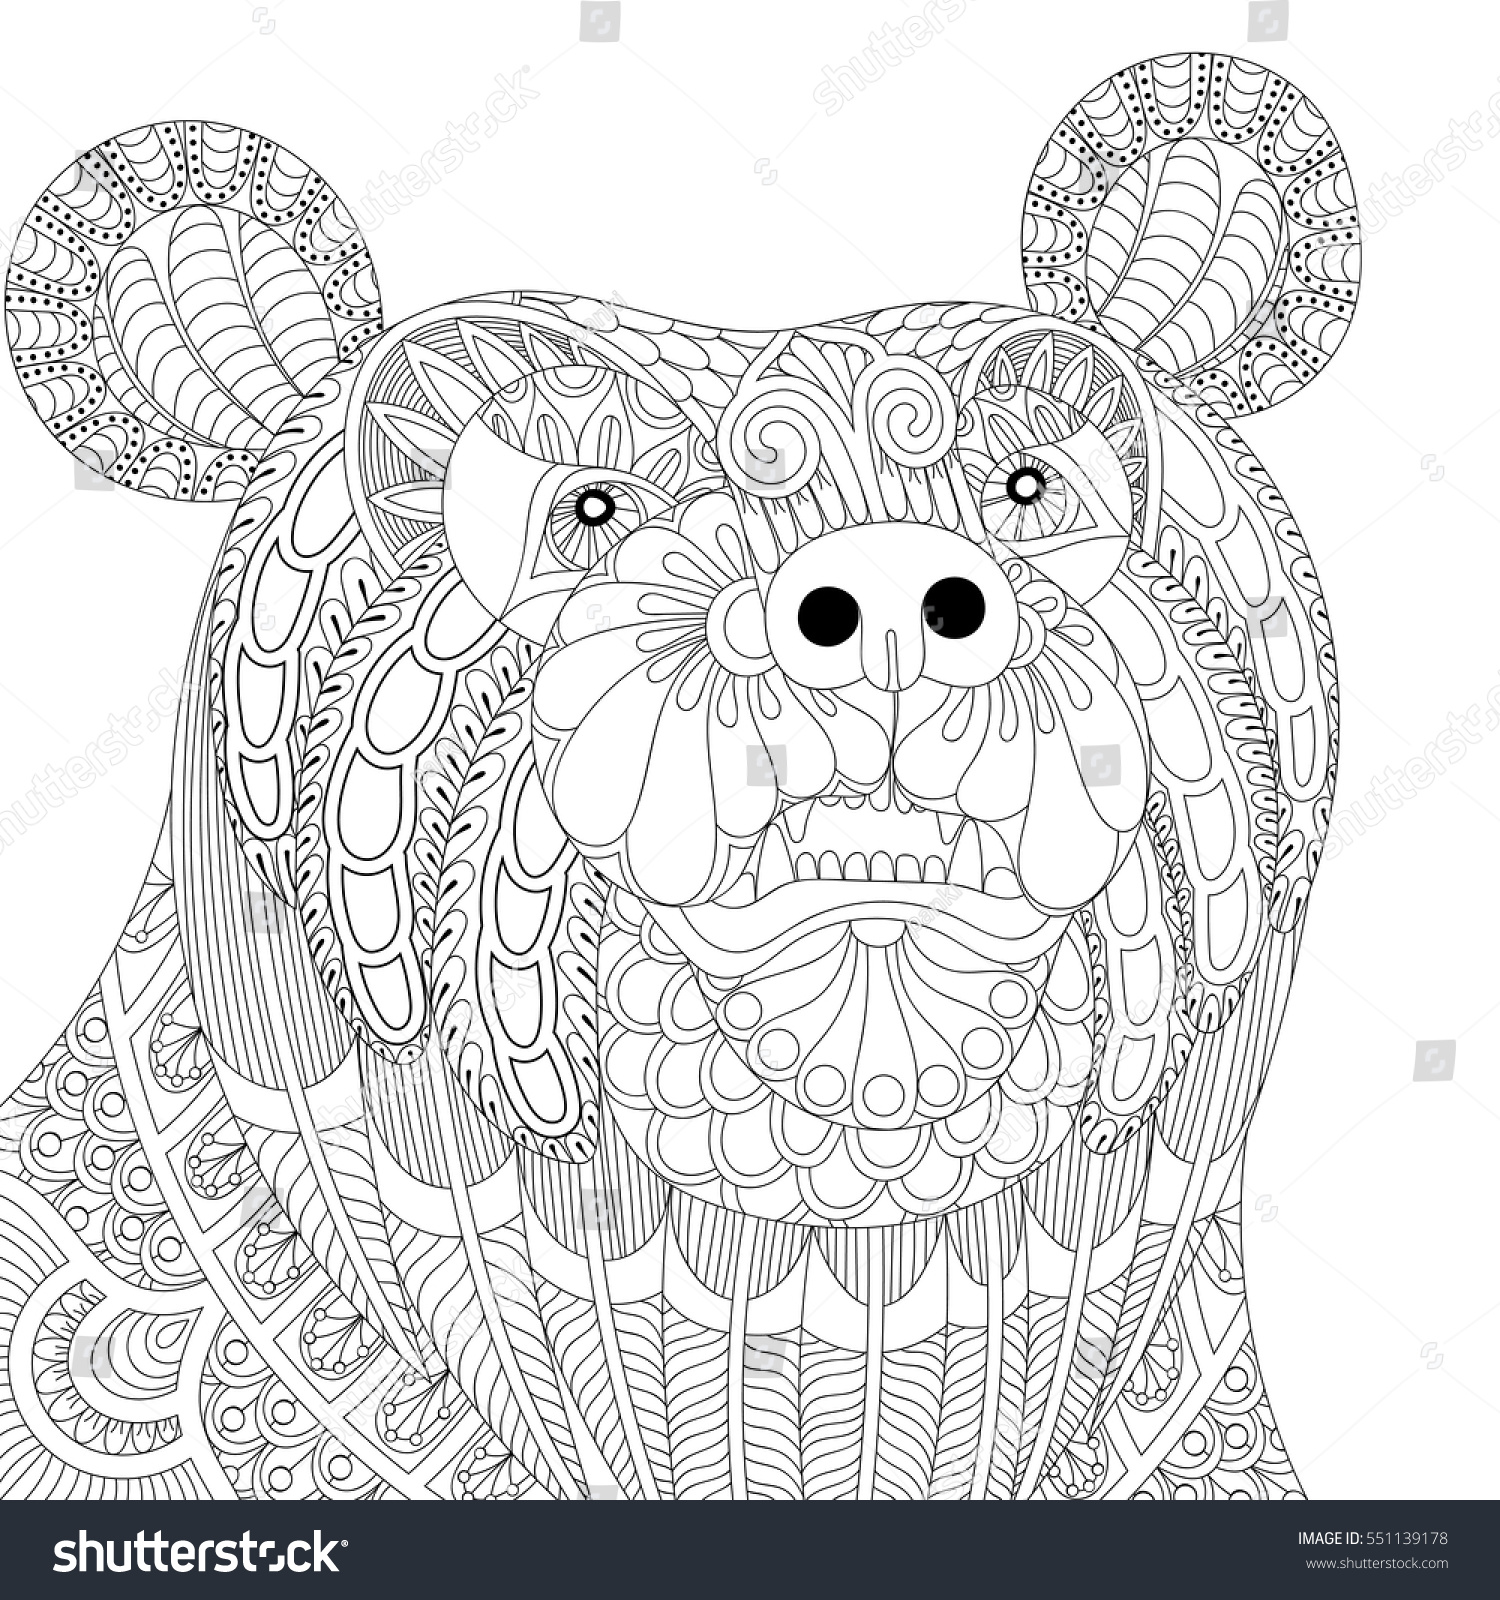 Zen colouring book animals - Vector Zentangle Bear Head For Adult Anti Stress Coloring Pages Book Animal Face For Art Download Image Zen Colouring